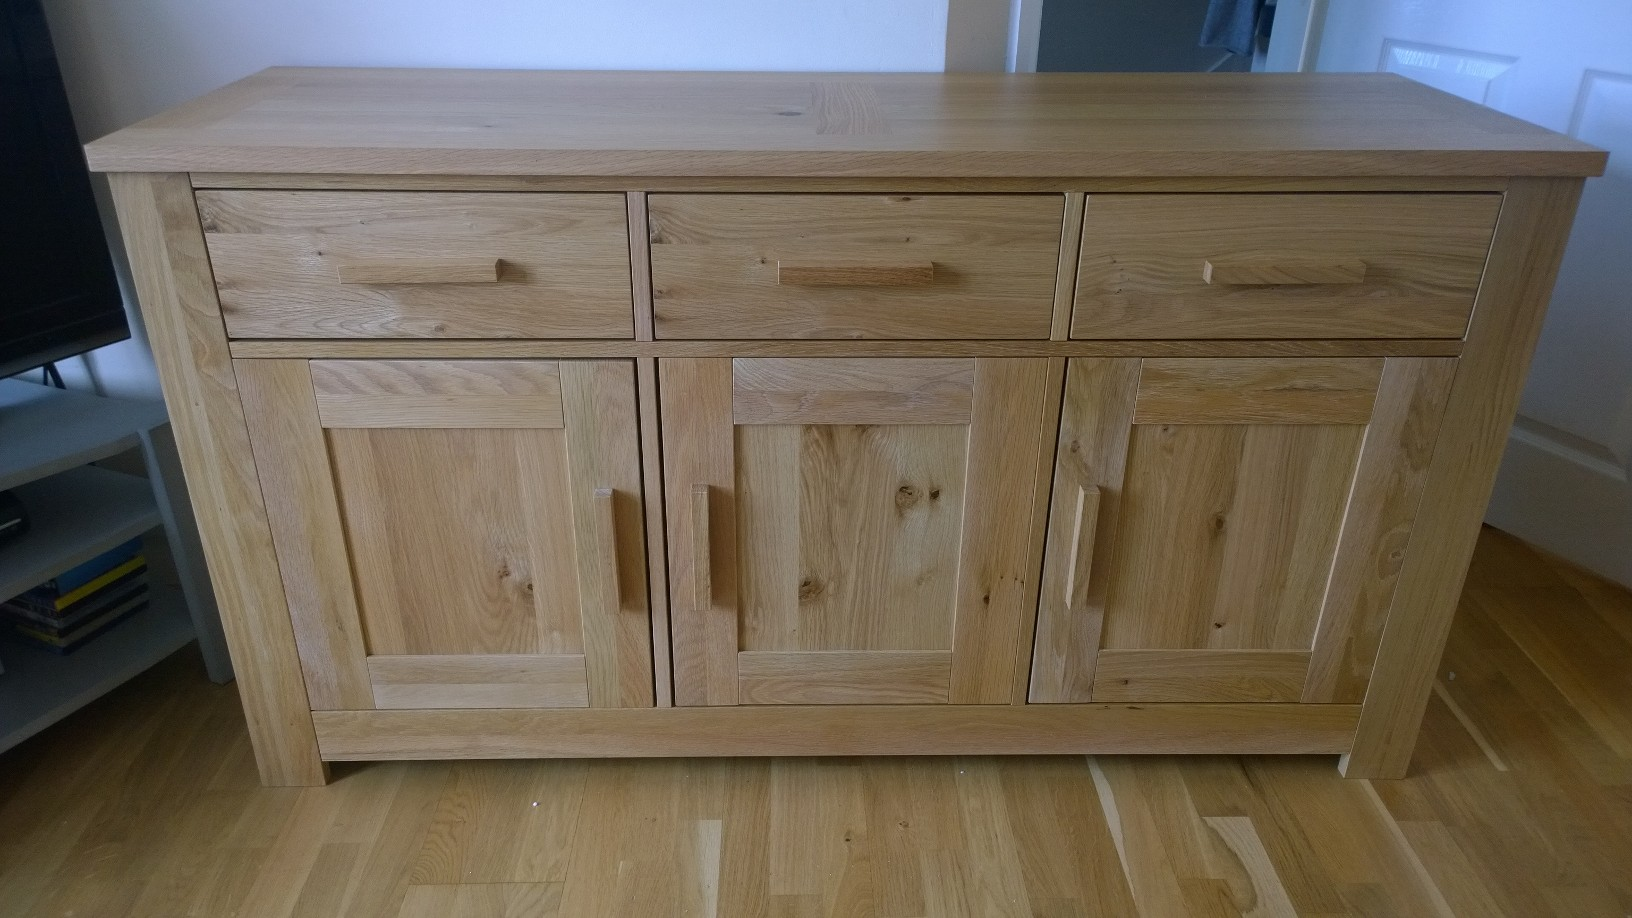 Flatpack furniture installation and assembly service in sudbury - Diy tips assembling flat pack furniture ...